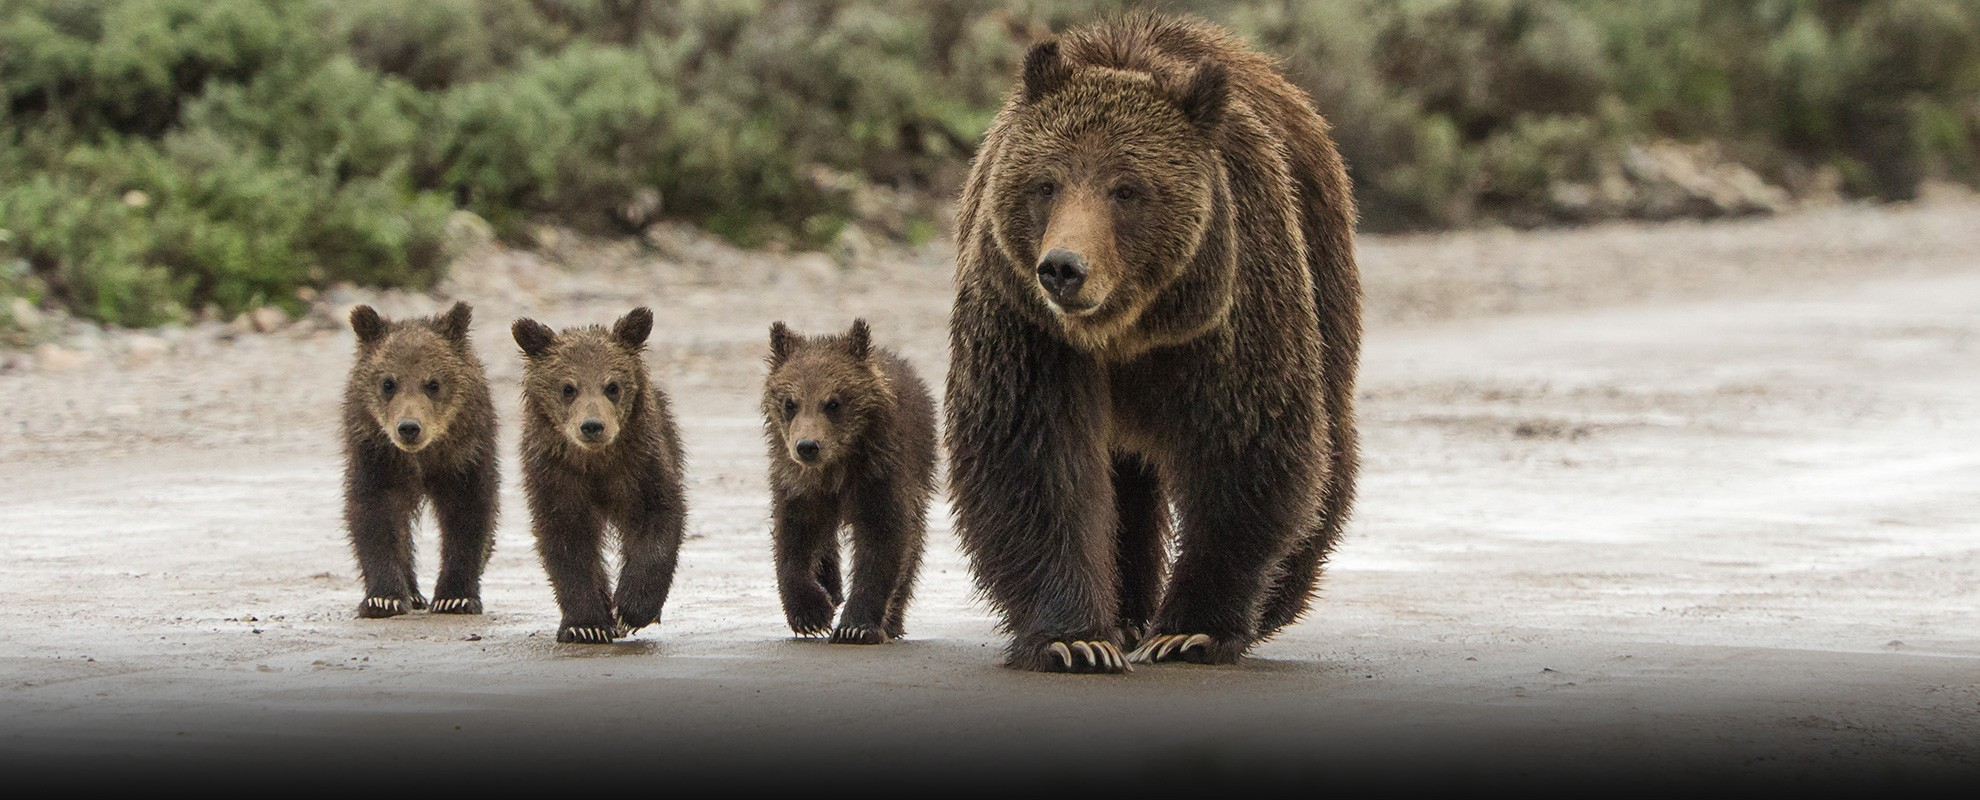 Grizzly 399 and her three cubs walk down a dirt road on May 19, 2013.